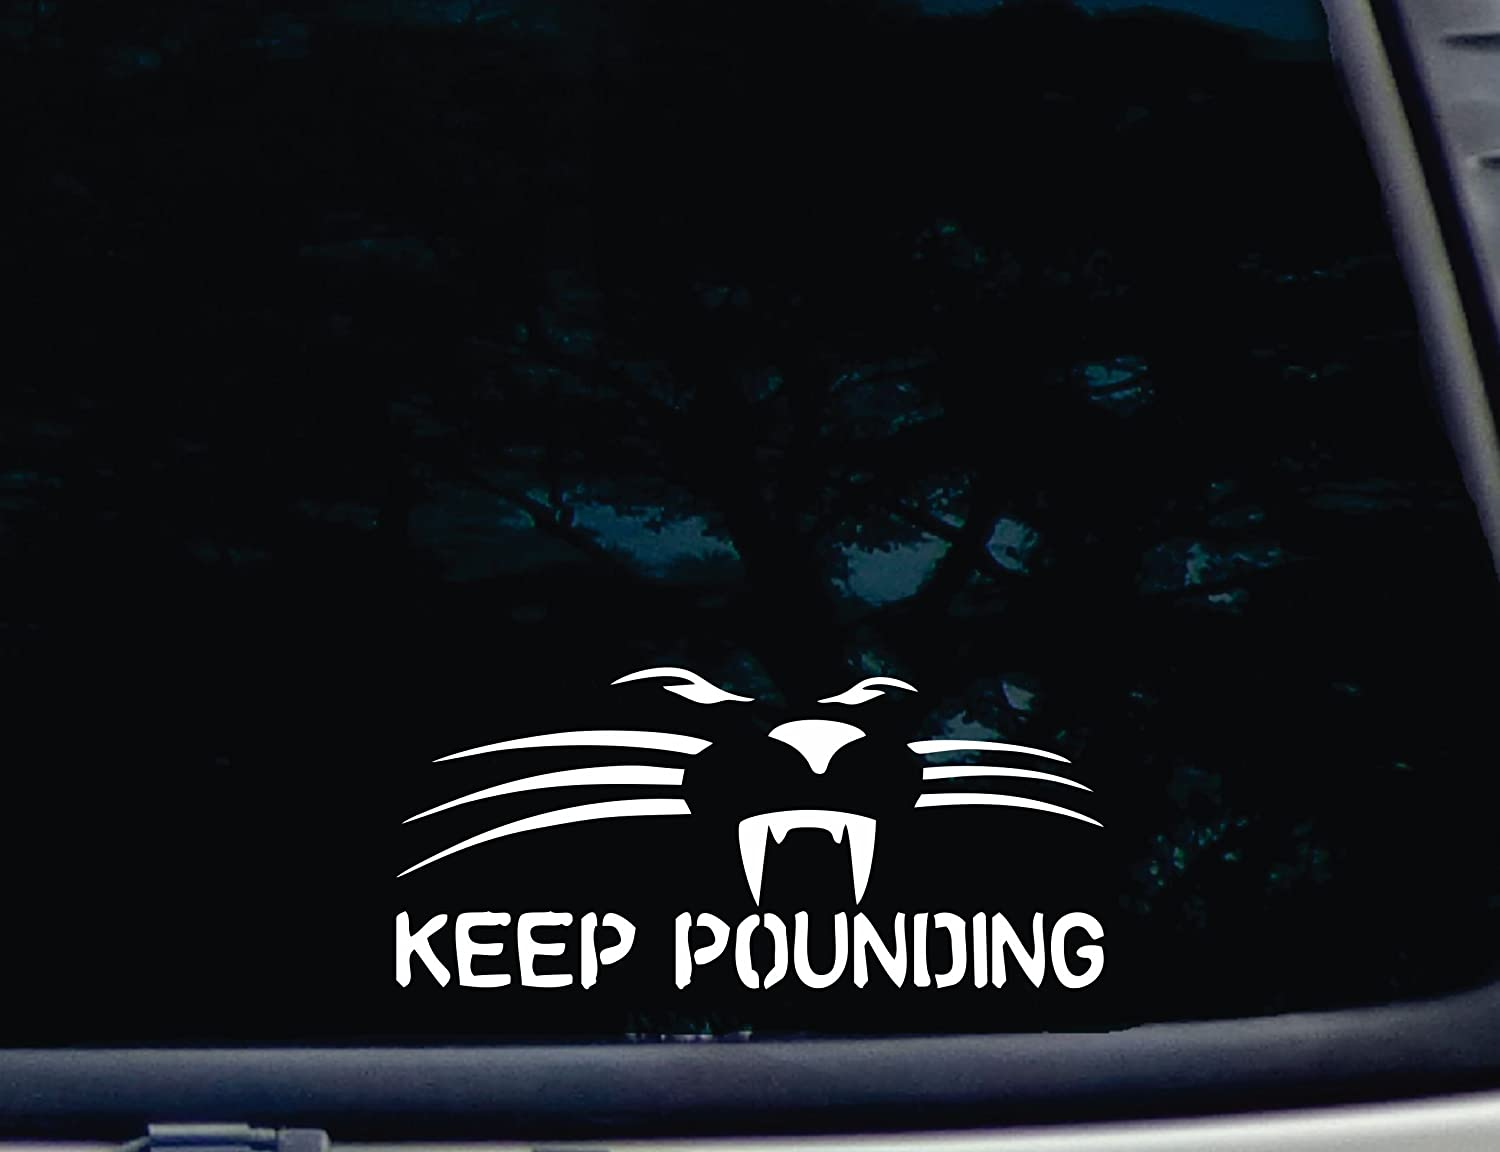 Amazoncom Keep Pounding  X   Die Cut Vinyl Decal For - Window car decals